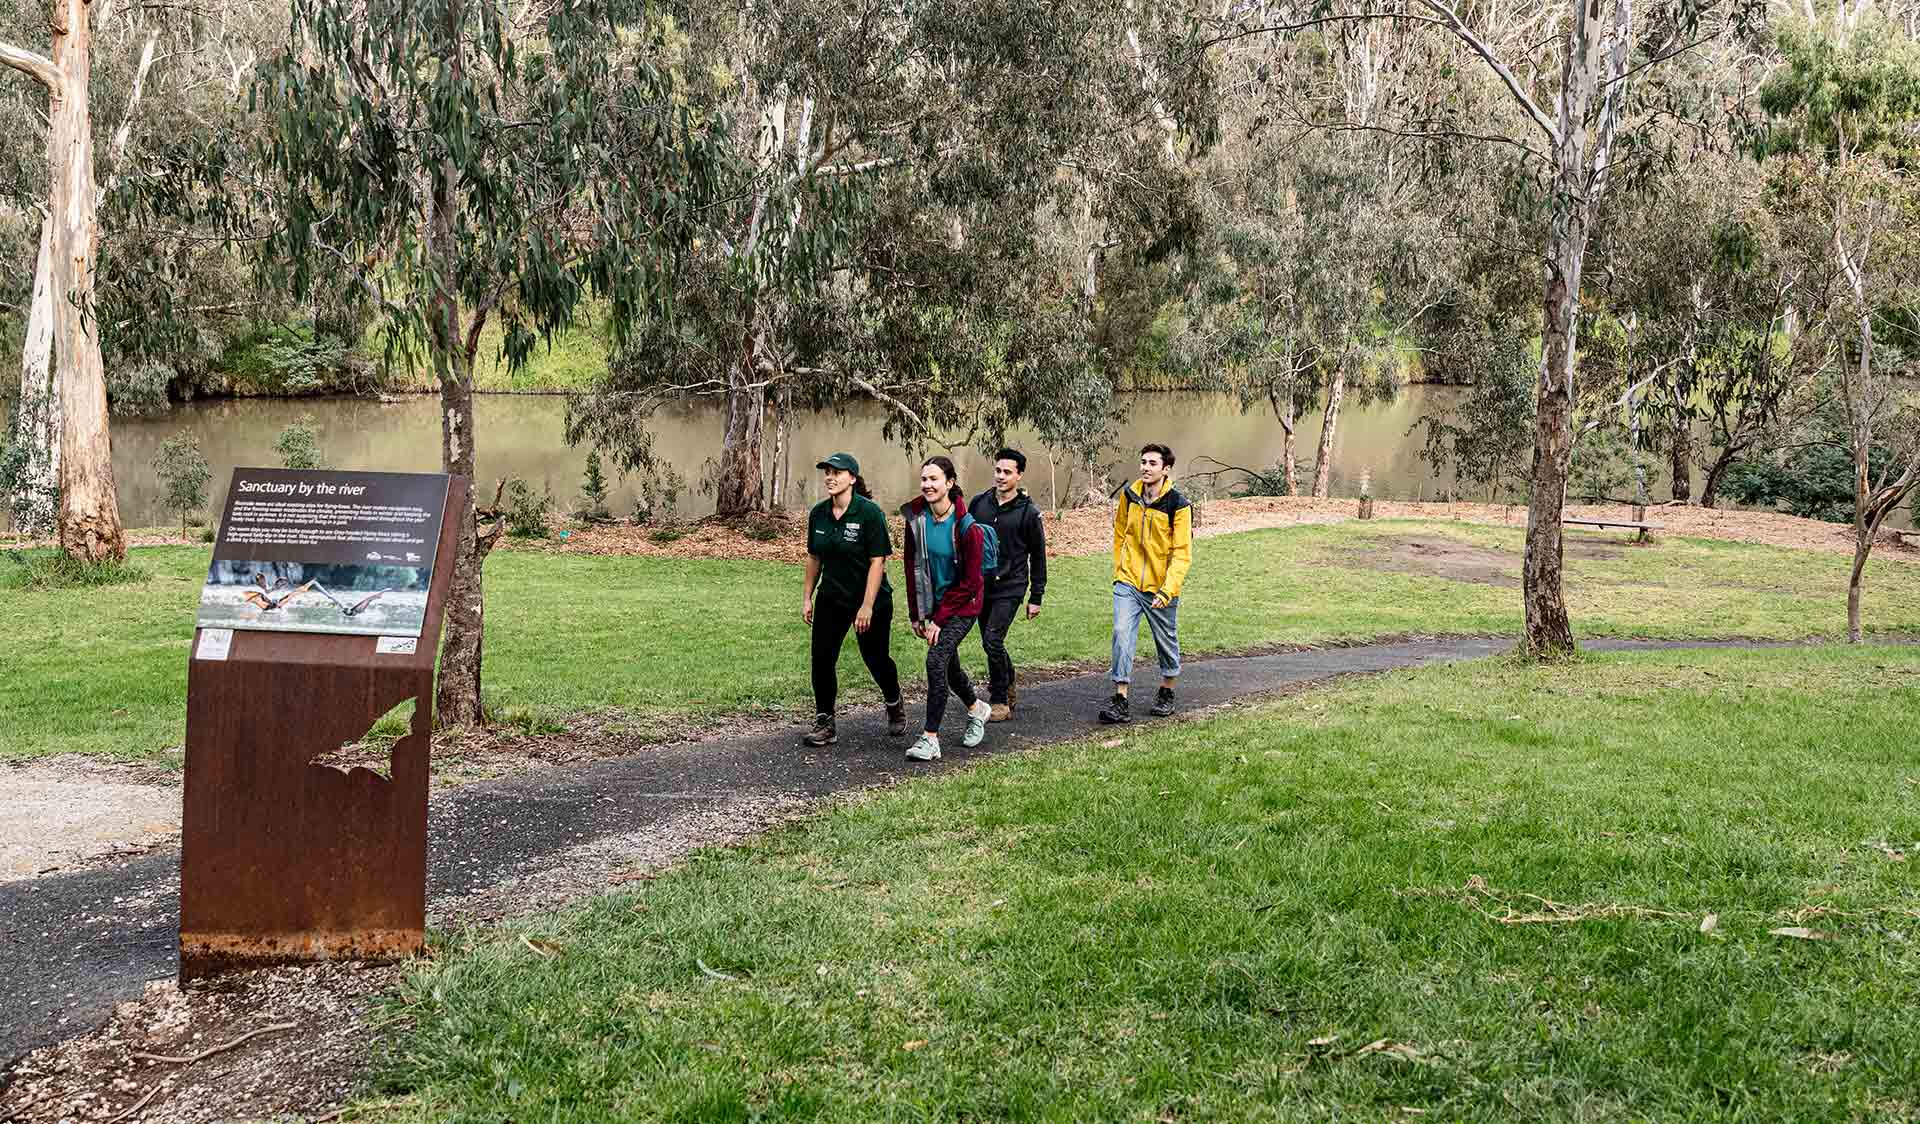 A group take a volunteer led tour through the Flying Fox environments on the banks of the Yarra River in Yarra Bend Park